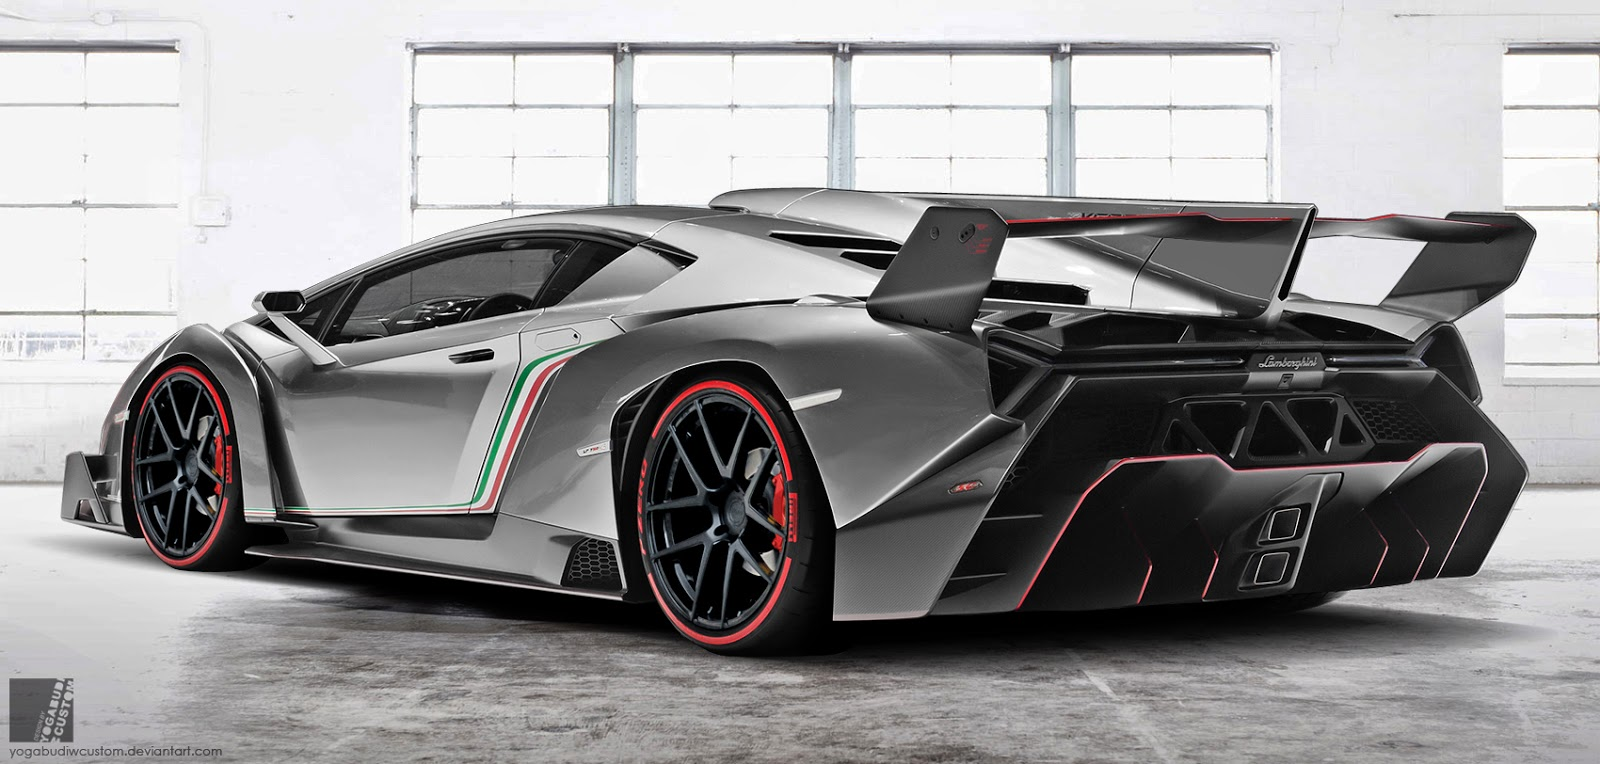 lamborghini veneno vs lamborghini aventador wide wallpapers lamborghini veneno wallpapers. Black Bedroom Furniture Sets. Home Design Ideas